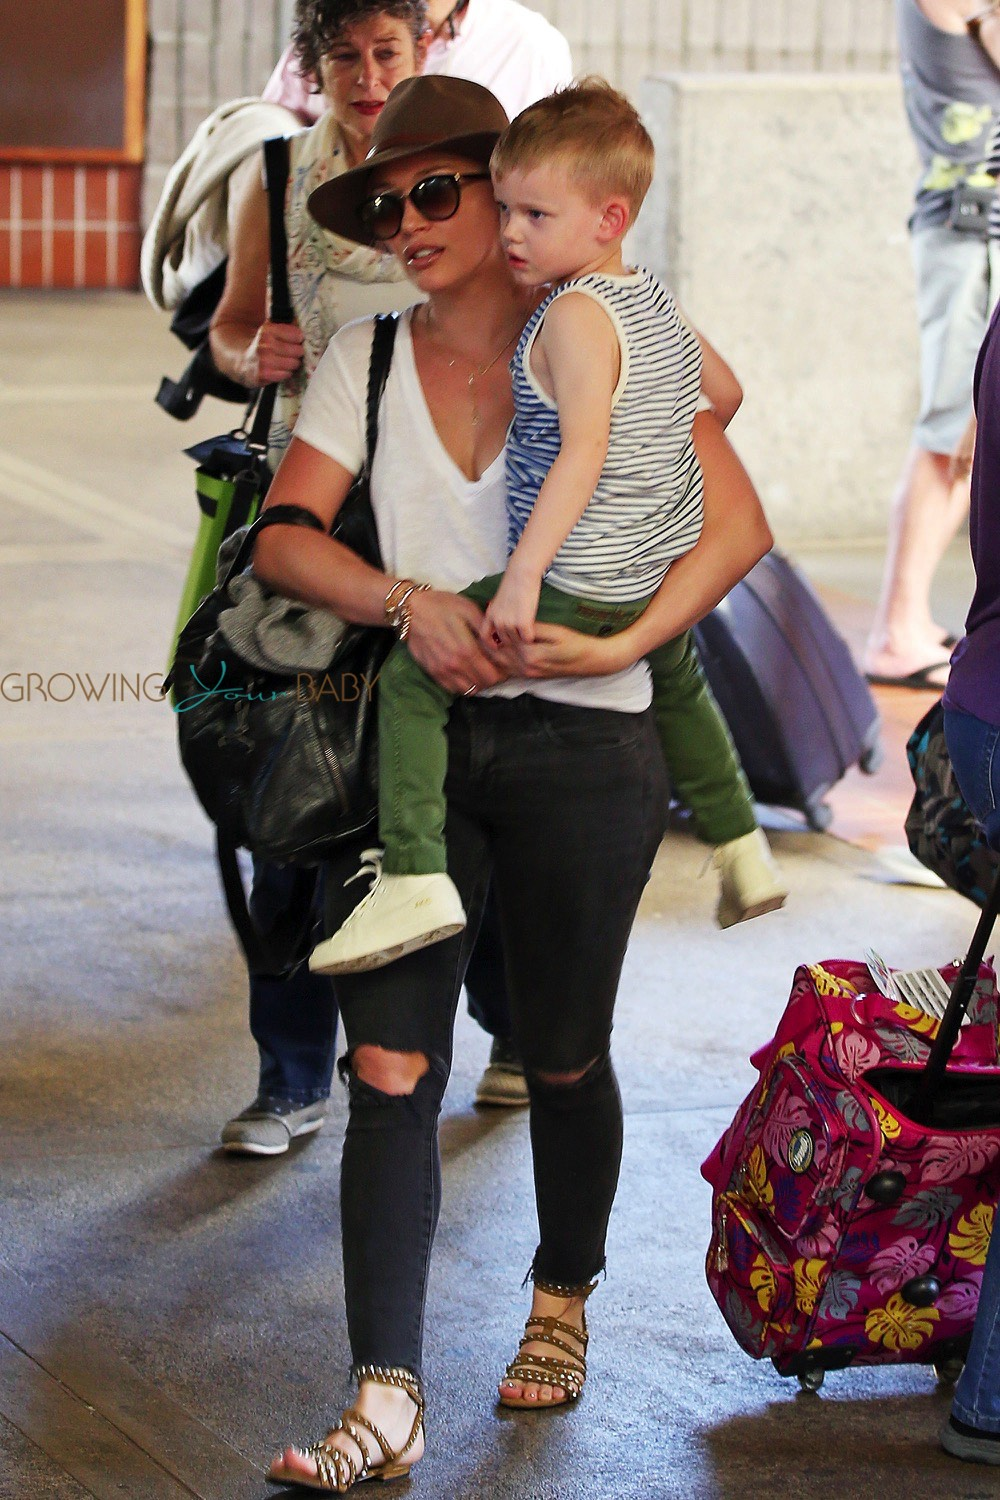 Hilary Duff Is Spotted At The Airport In Maui With Her Son Luca Comrie On February